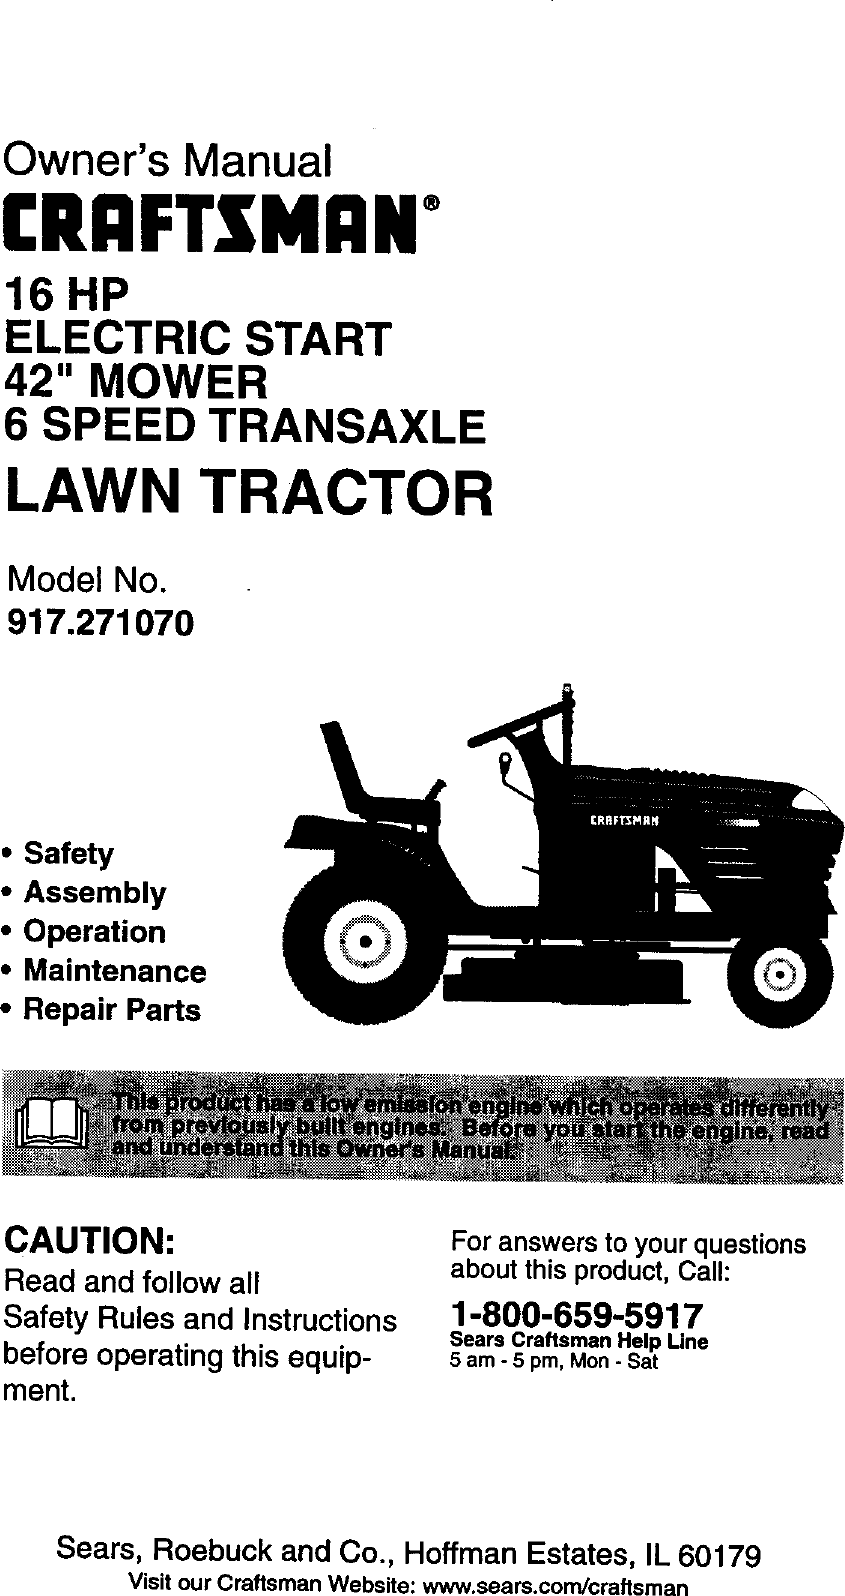 hight resolution of craftsman 917271070 user manual lawn tractor manuals and guides 99030708 electrical wiring schematics schematic wiring diagram for 917271070